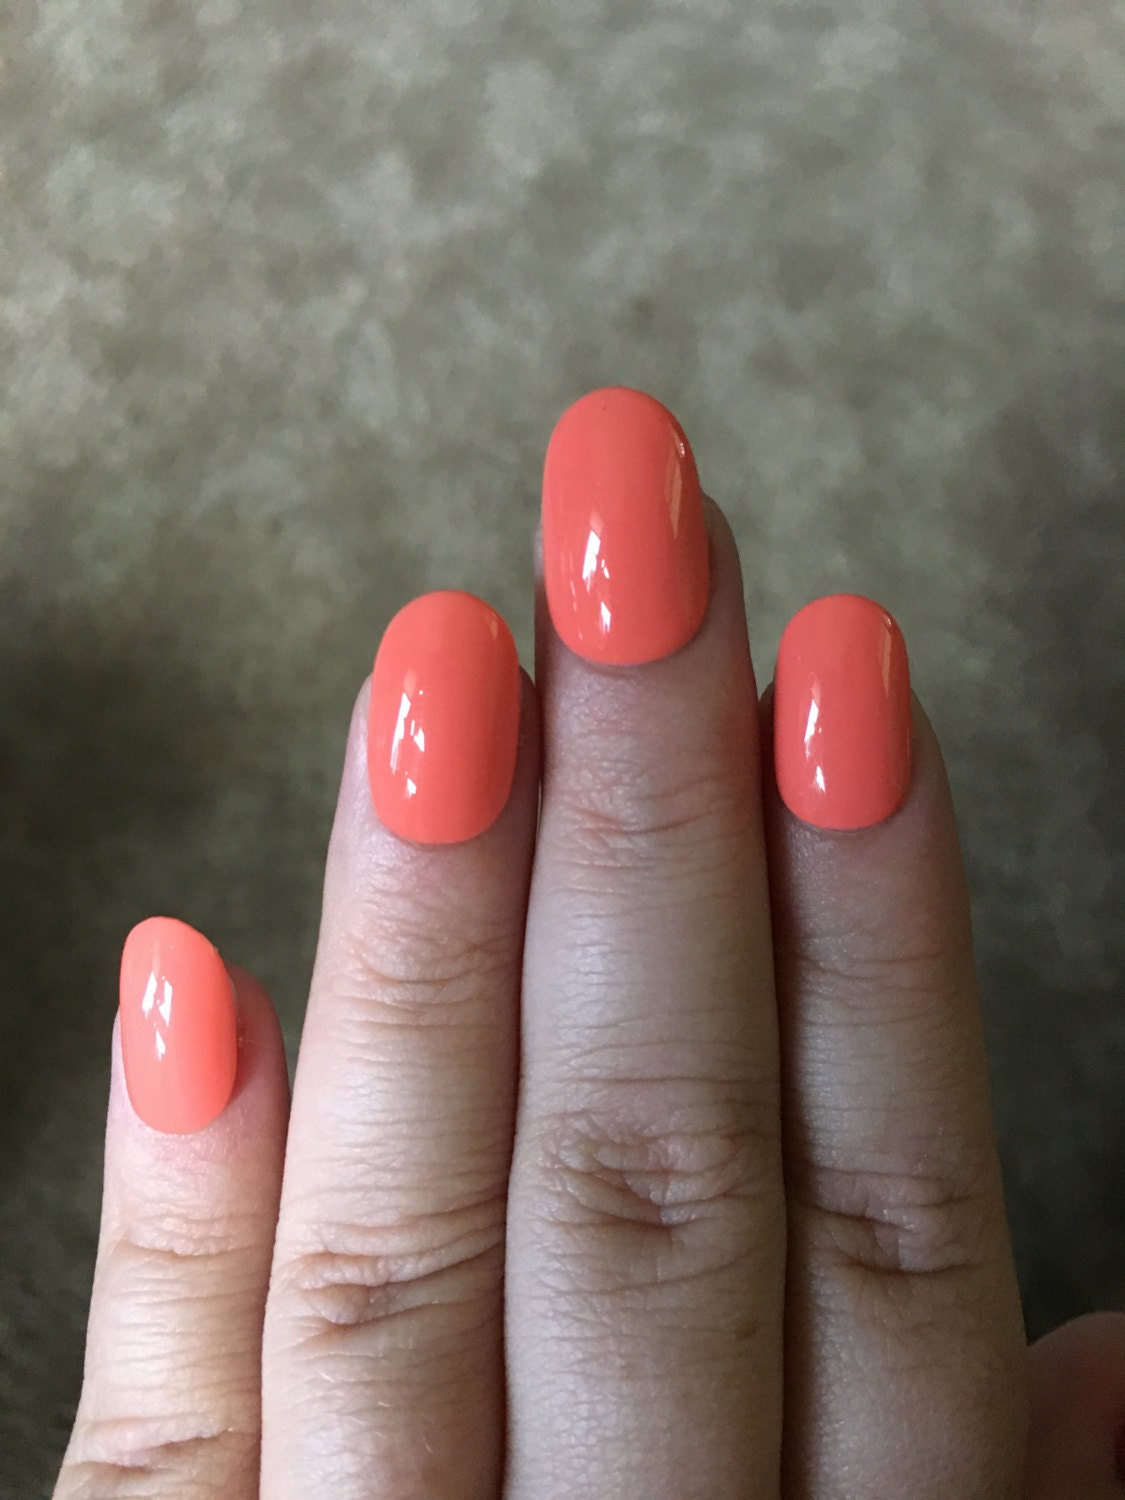 Coral/Pink Fake Nails | Press On | Glue On Nails | Different Shapes ...